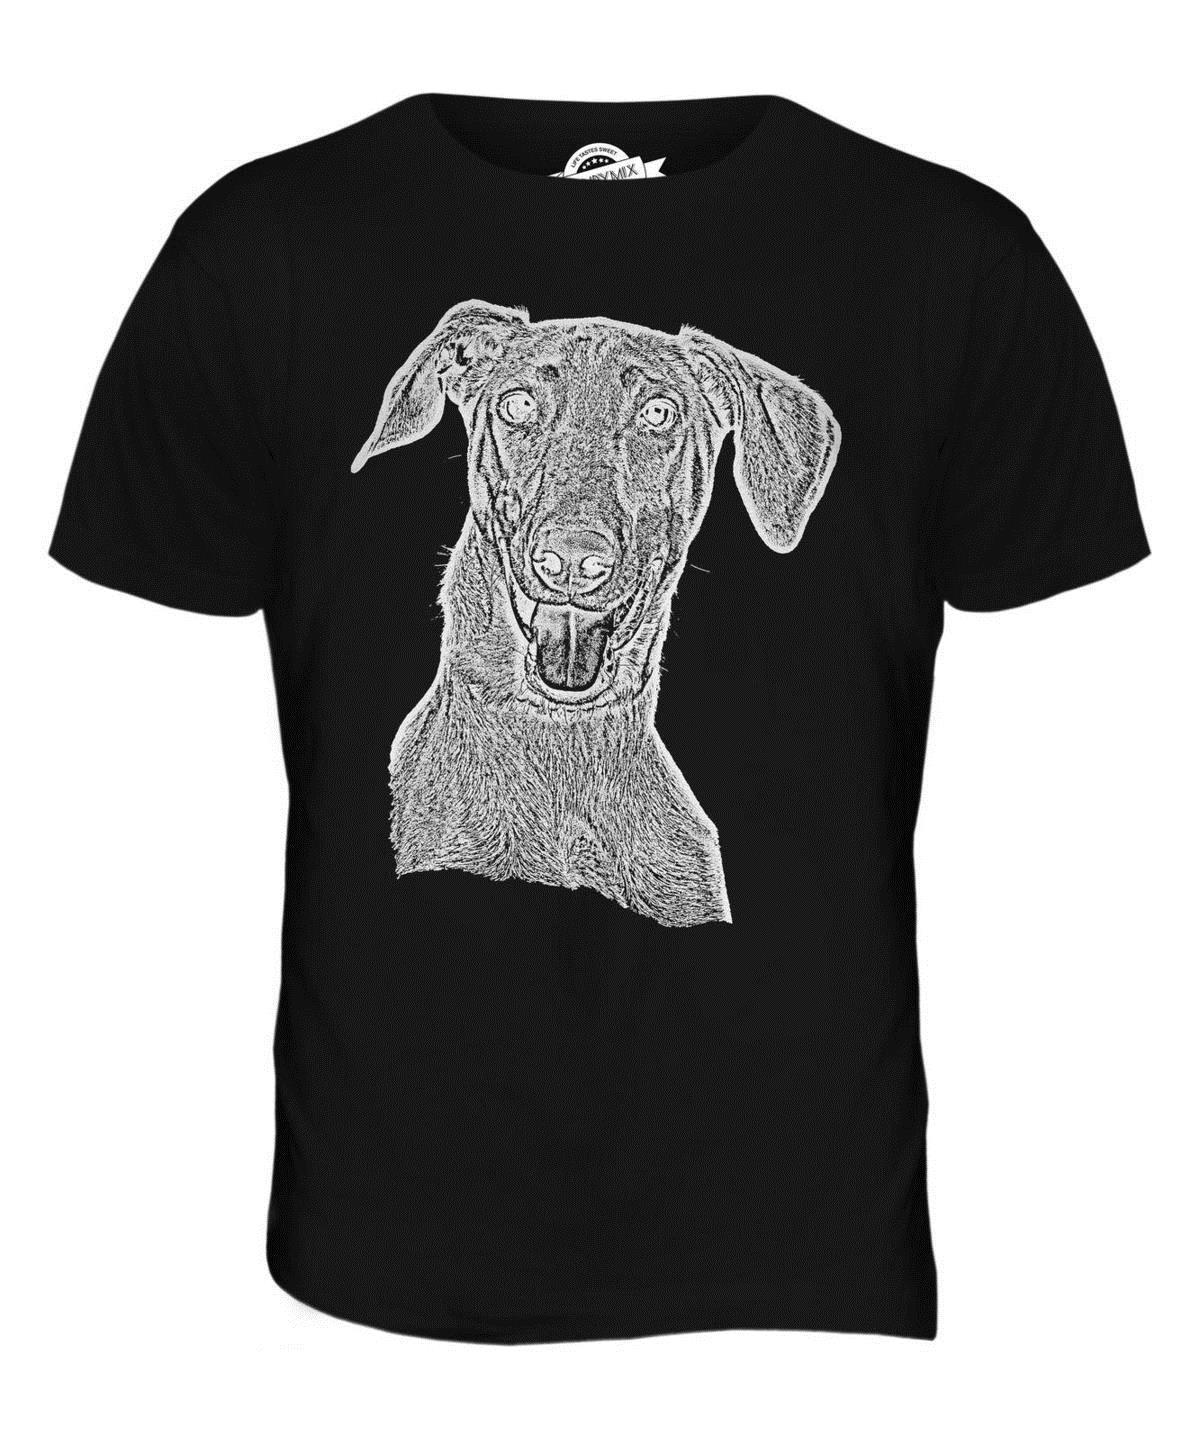 18c16f7df2a98 DOBERMAN PINSCHER SKETCH MENS PRINTED T SHIRT TOP GREAT GIFT FOR DOG LOVER  Tee Shirts Funny Tee Shirt Sites From Yubin6, $27.6  DHgate.Com